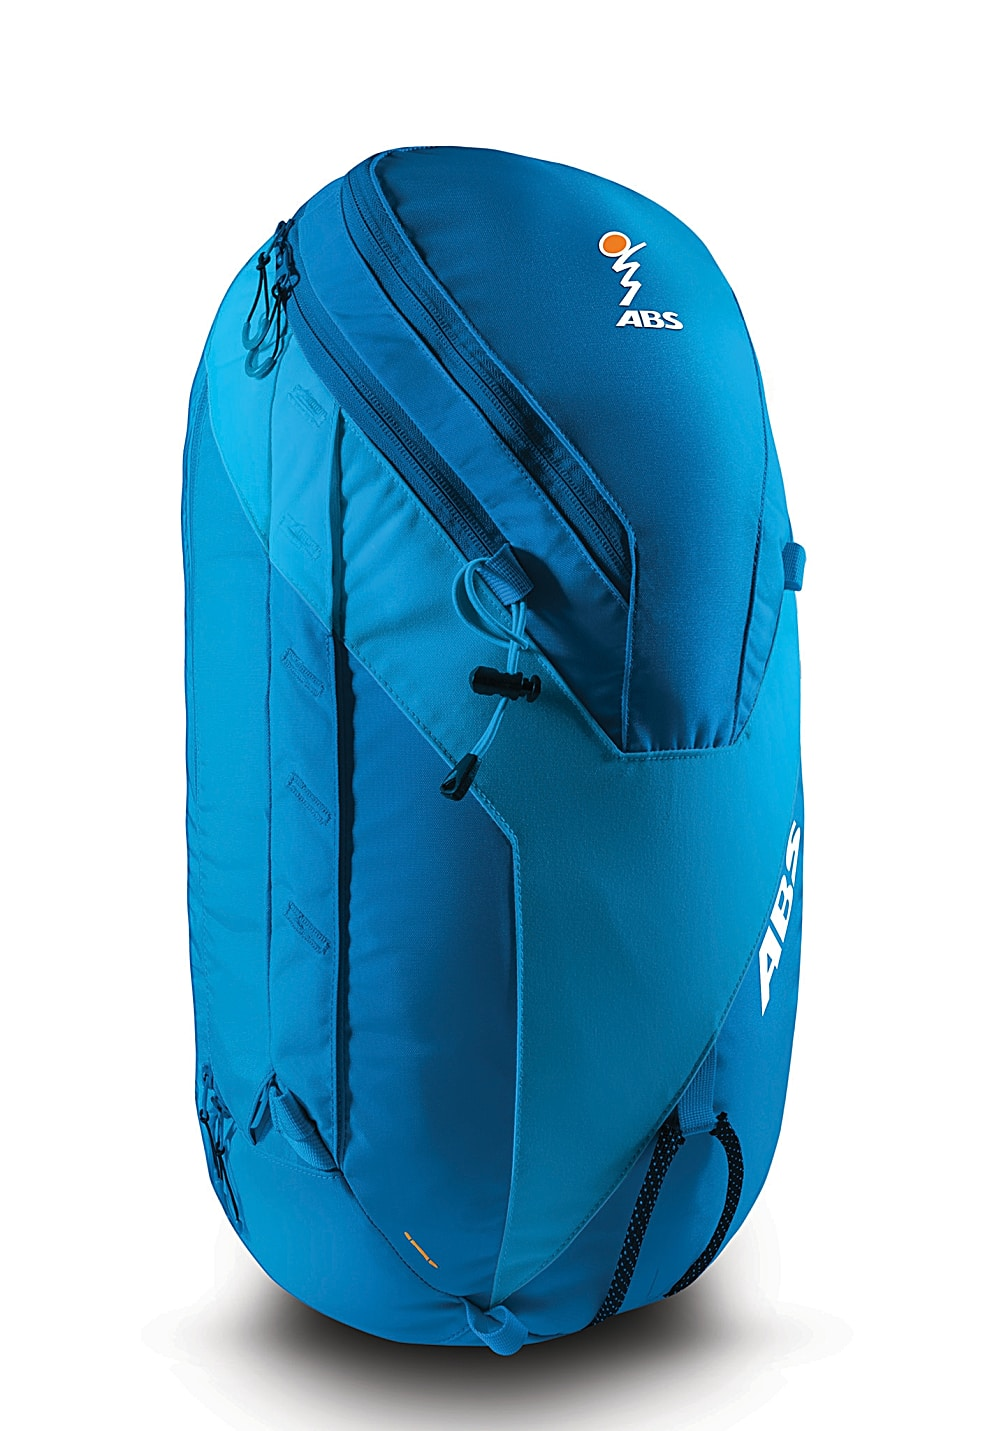 ABS Vario 24L Zip-On Lawinenrucksack - Blau